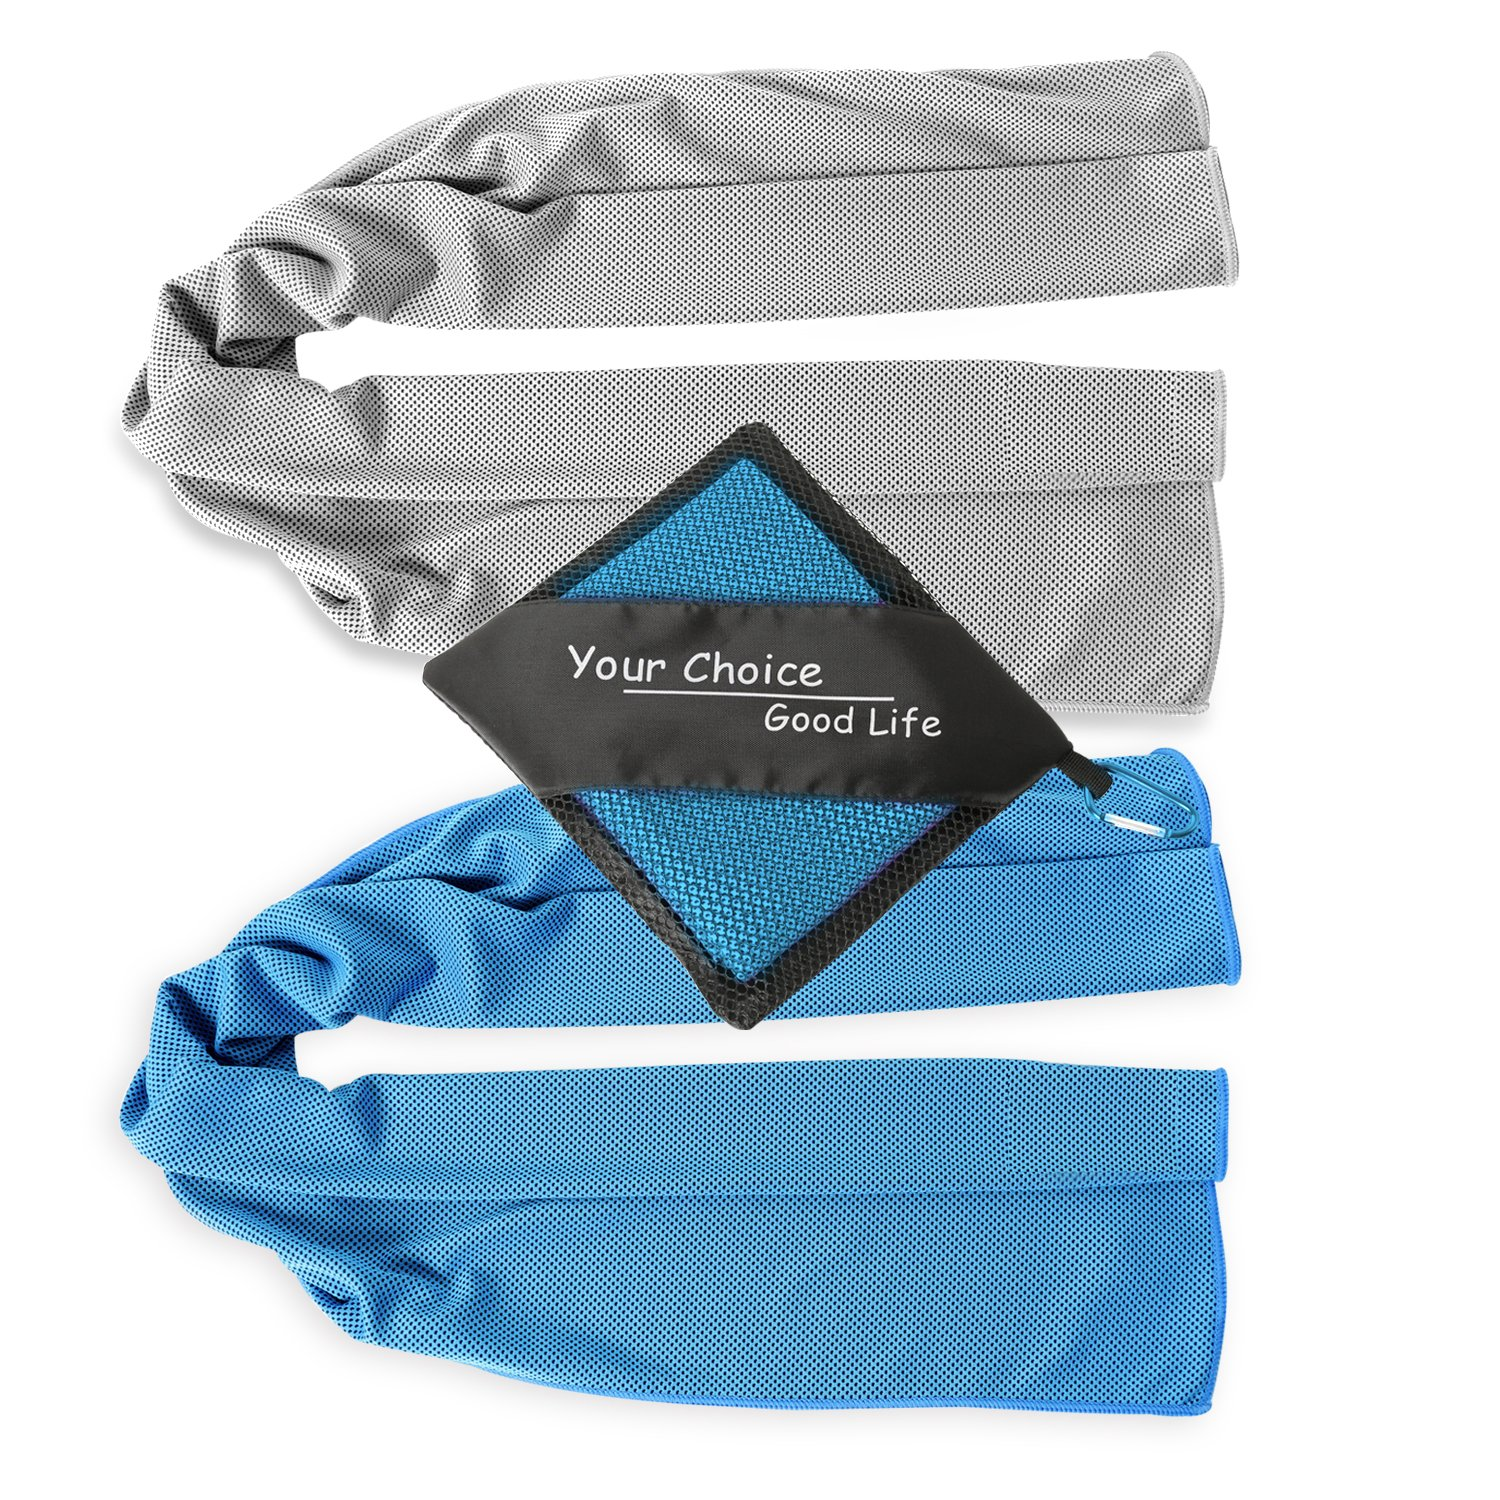 Cool Towel - 2 Pack Cooling Scarf Towel Set, Mesh Yoga Towel, Cooling Workout Towel, Cooling Neck Towel Headband Bandana, Stay Cool Towels for Sports Travel & Gym Fitness Gray and Blue 12x40 Inch